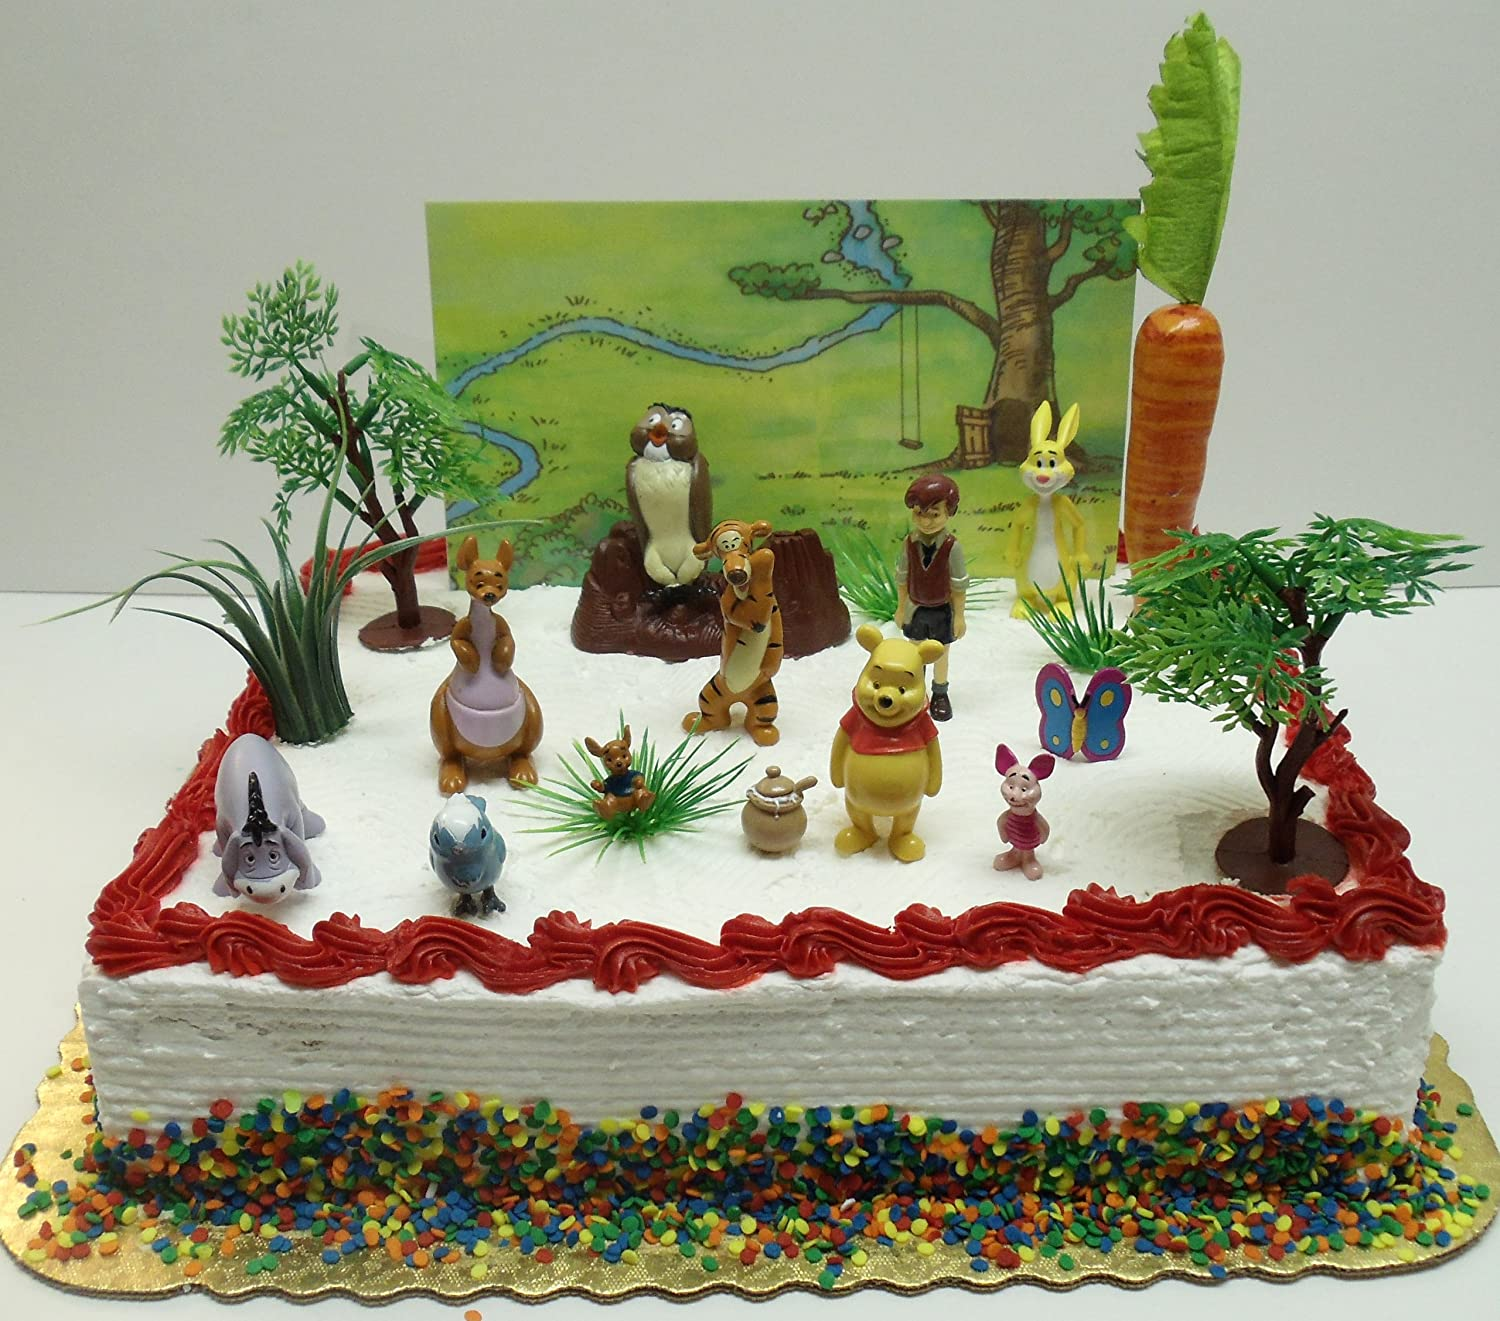 Cake Decoration Figures : Winnie The Pooh 16 Piece Birthday Cake Topper Set ...